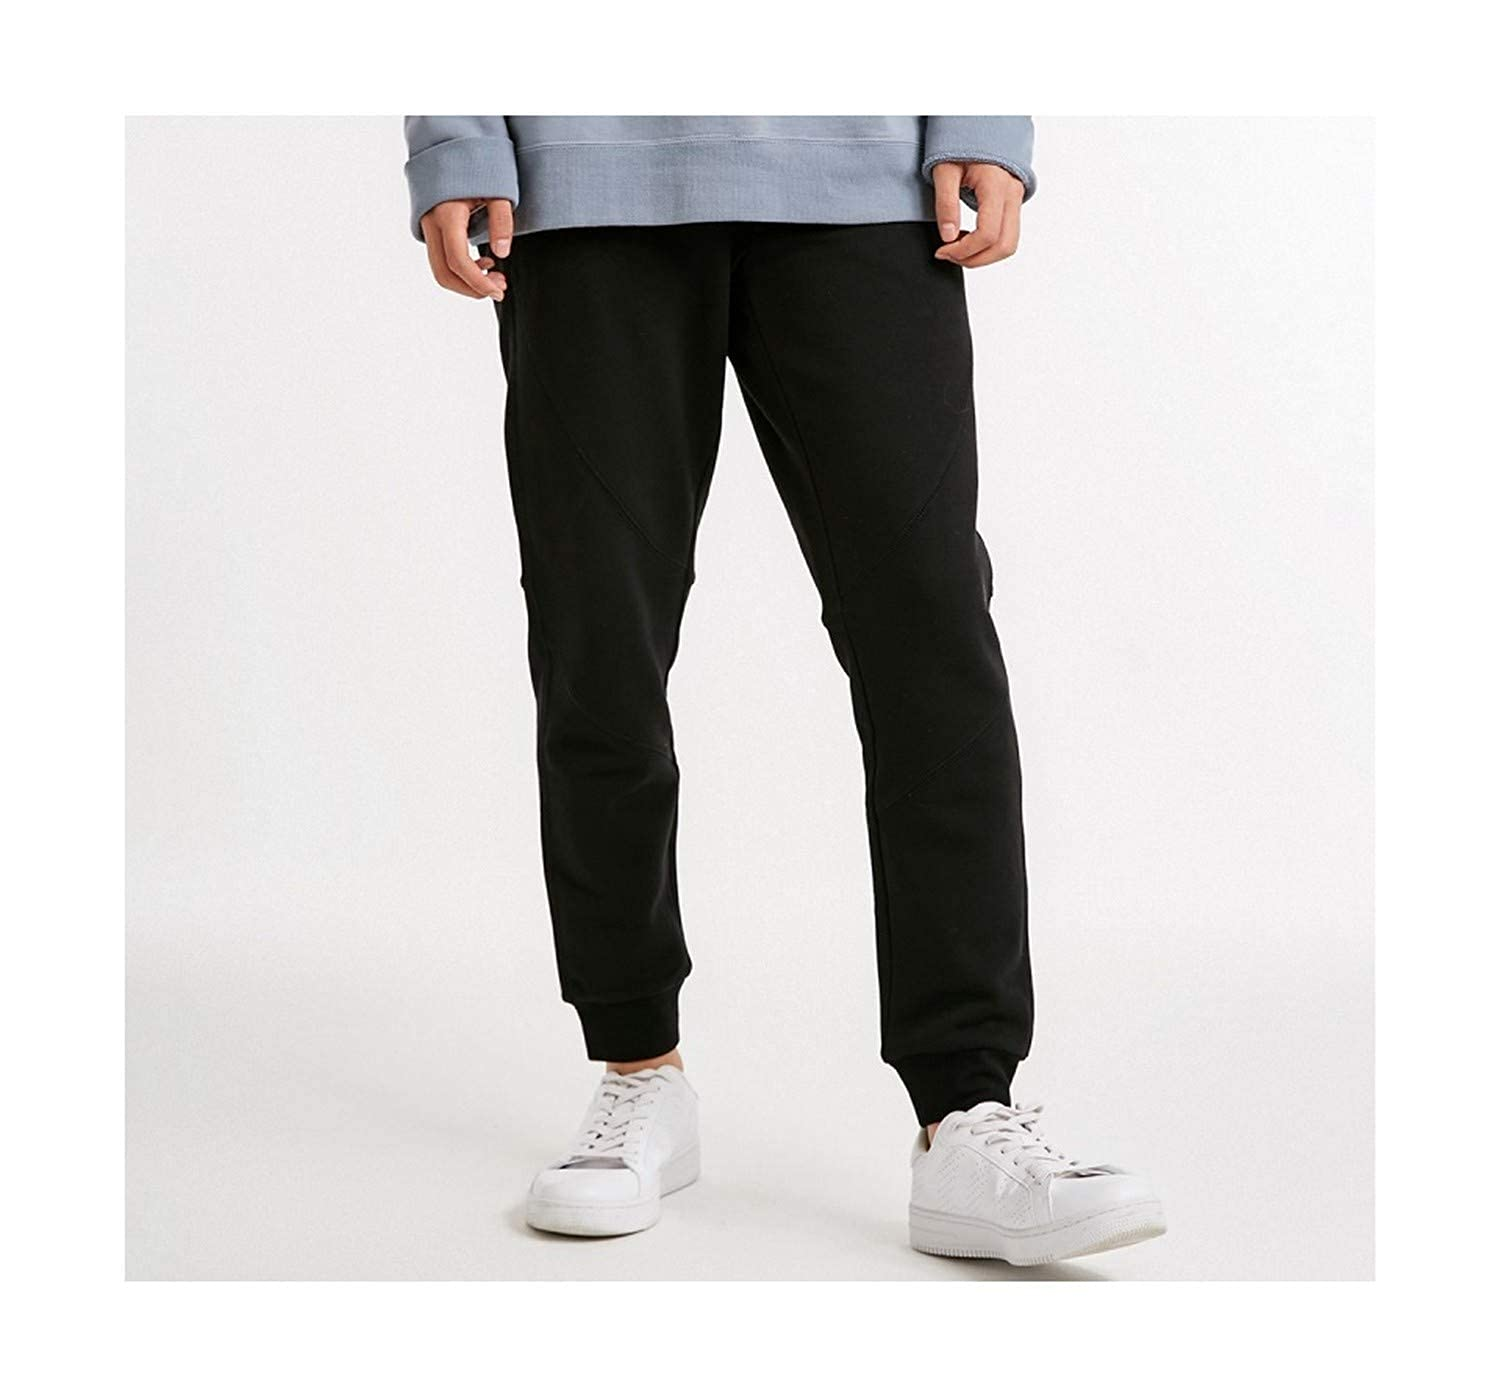 Spring Mens Stretch Fashion Trend Comfortable Sports Trousers